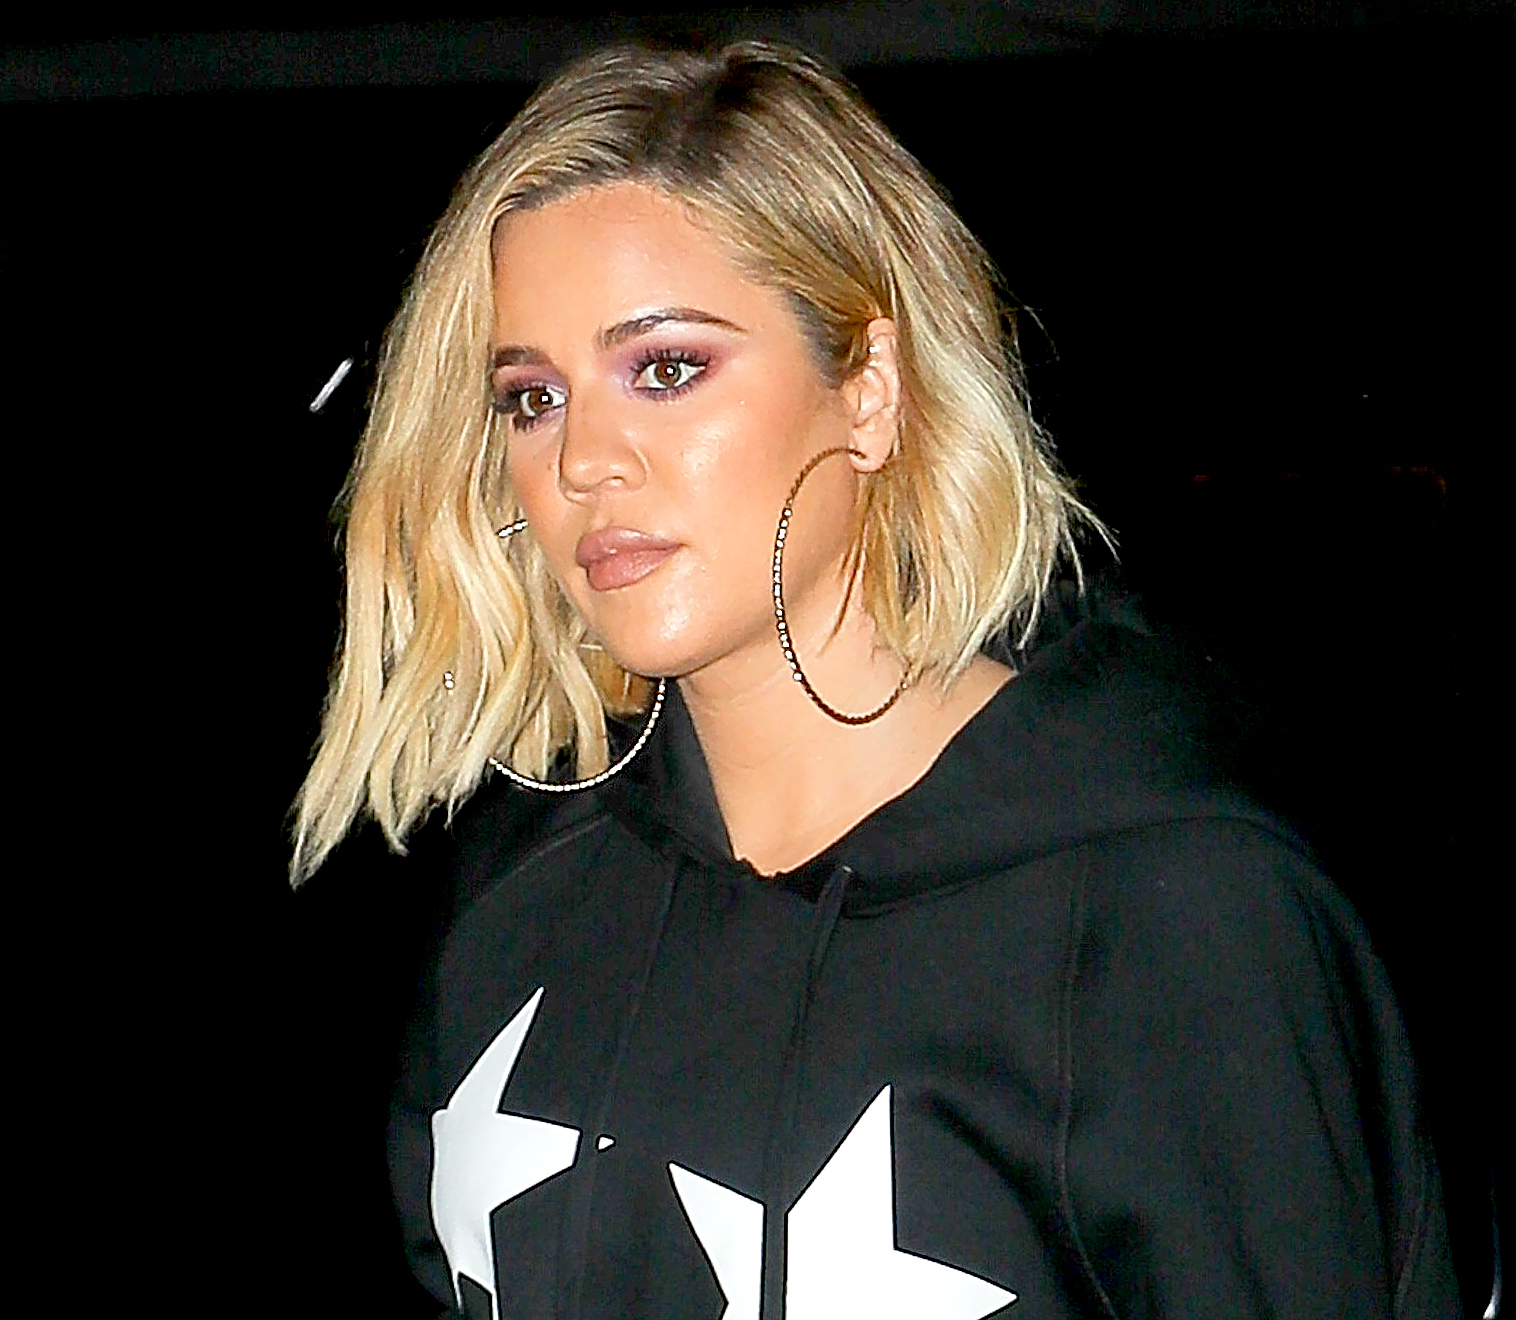 Watch Khloé Kardashian Asks Everyone to Leave Her Alone After Giving Birth in This Exclusive KUWTK Clip video